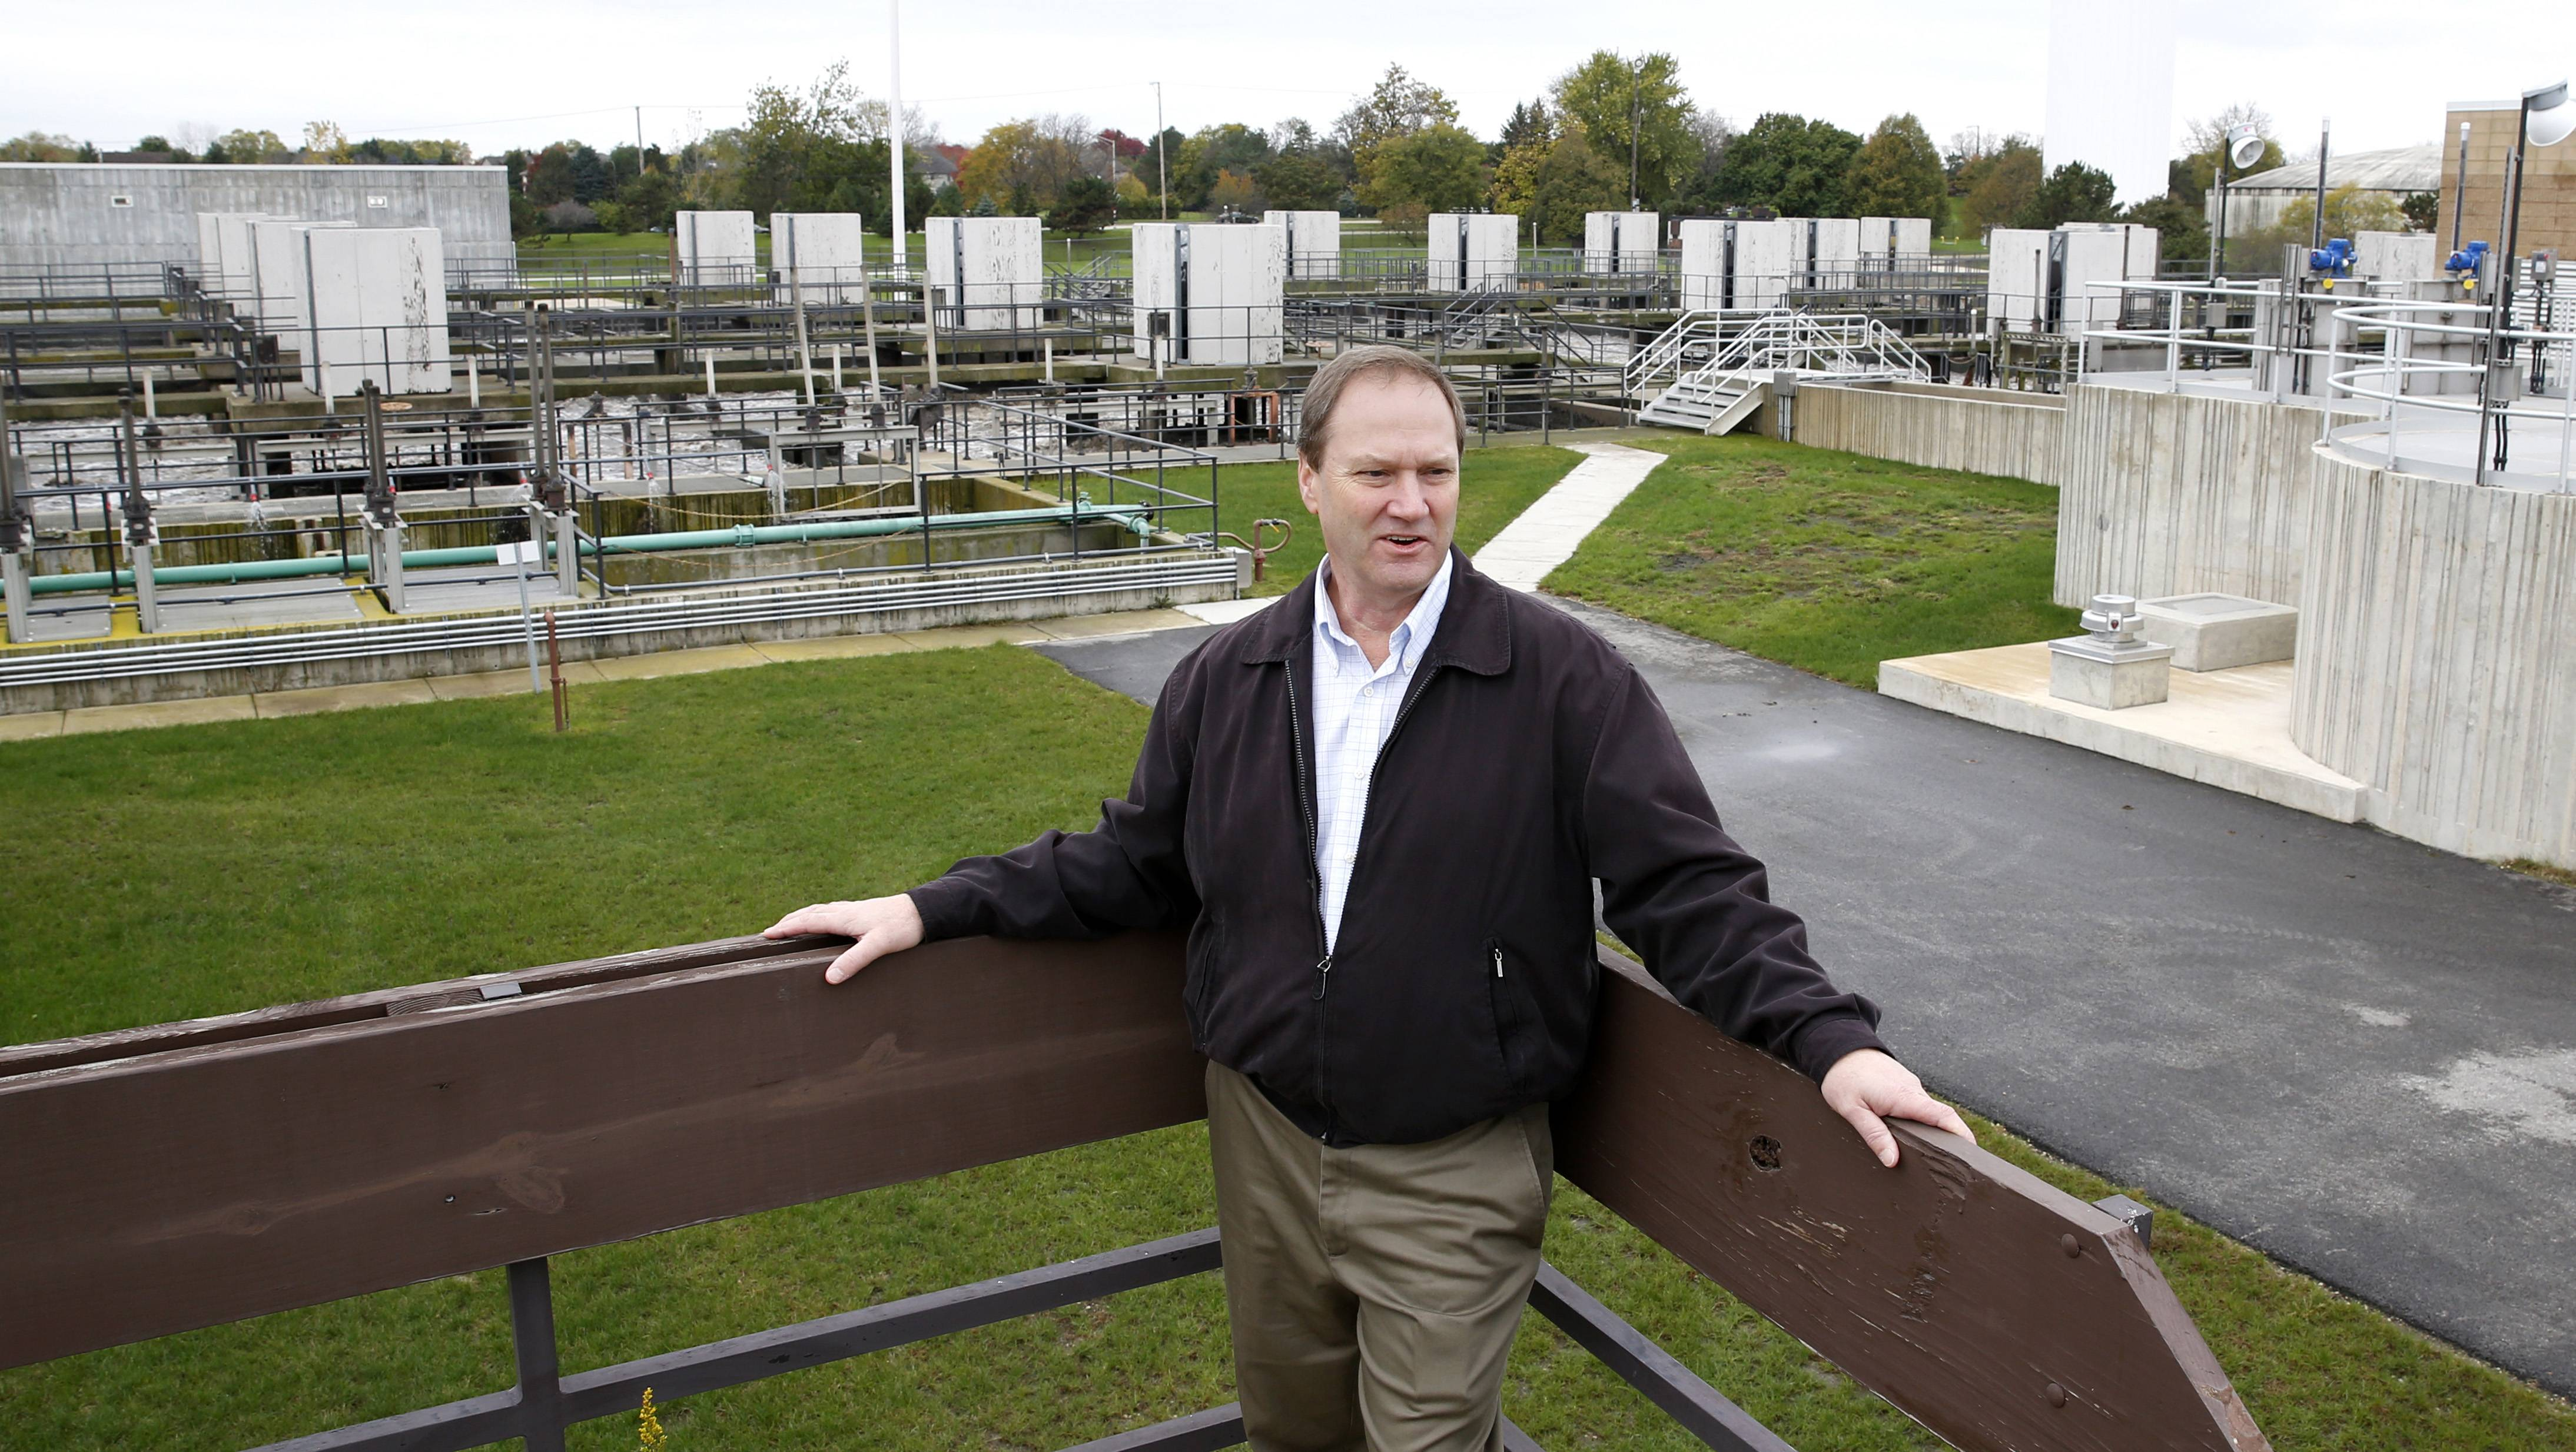 Jim Holzapfel, water and wastewater utility director for the city of Naperville, says it could cost between $40 million and $60 million to upgrade the Springbrook Water Reclamation Facility to meet new standards imposed by the Illinois Environmental Protection Agency. The facility is one of 2,248 in the state licensed to treat wastewater and discharge it into rivers and streams.